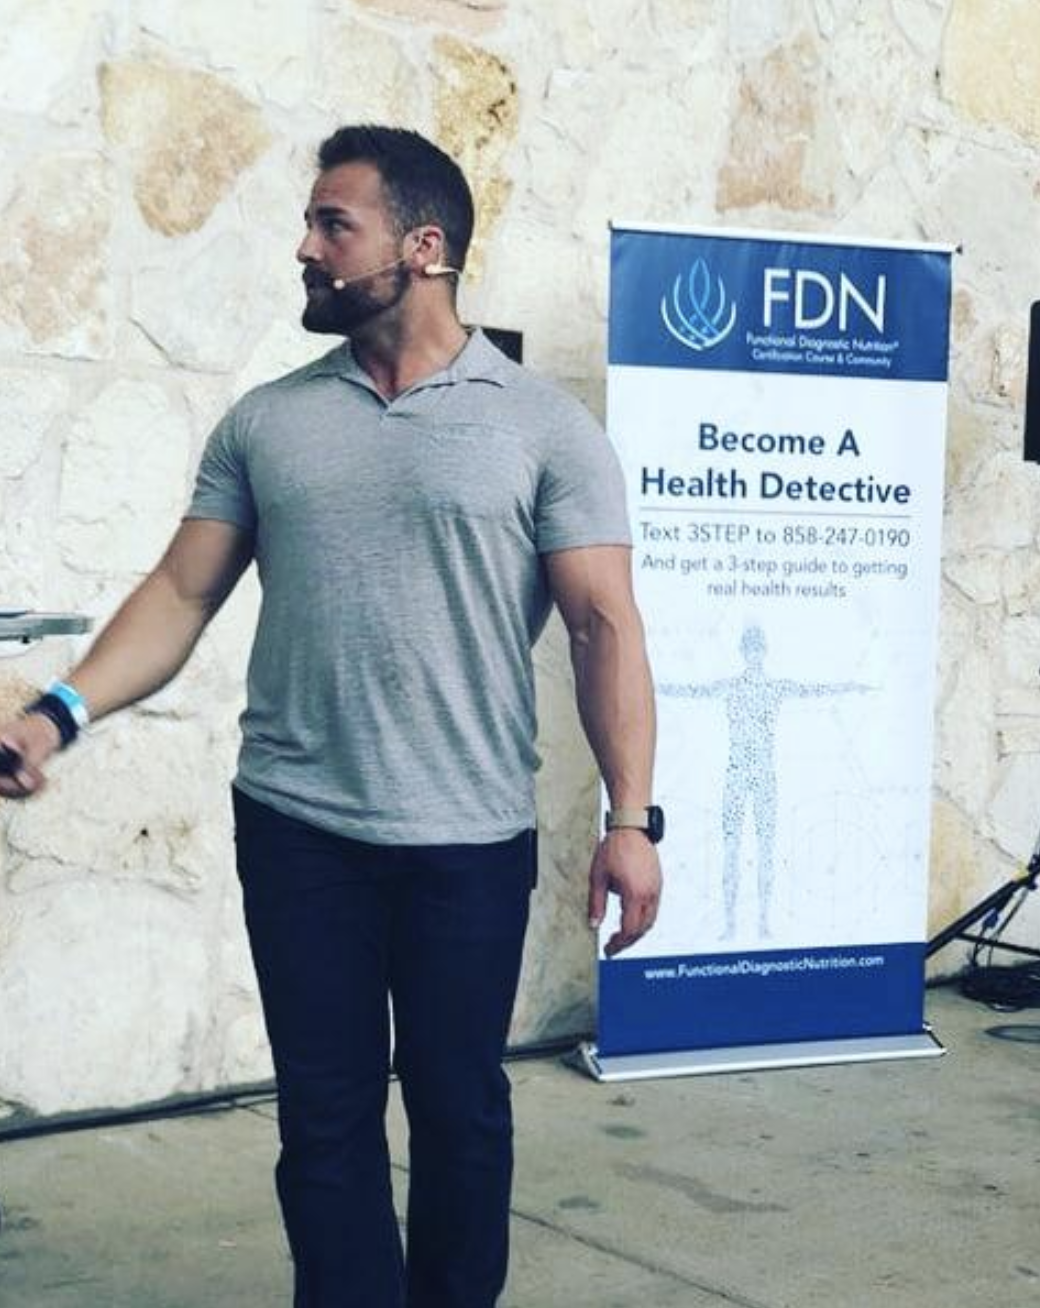 I had the privilege of lecturing to a group of Holistic Health Professionals and enthusiasts on the necessity for a Functional Approach to Optimal Wellness at Paleo FX in Austin Texas (Summer 2019).